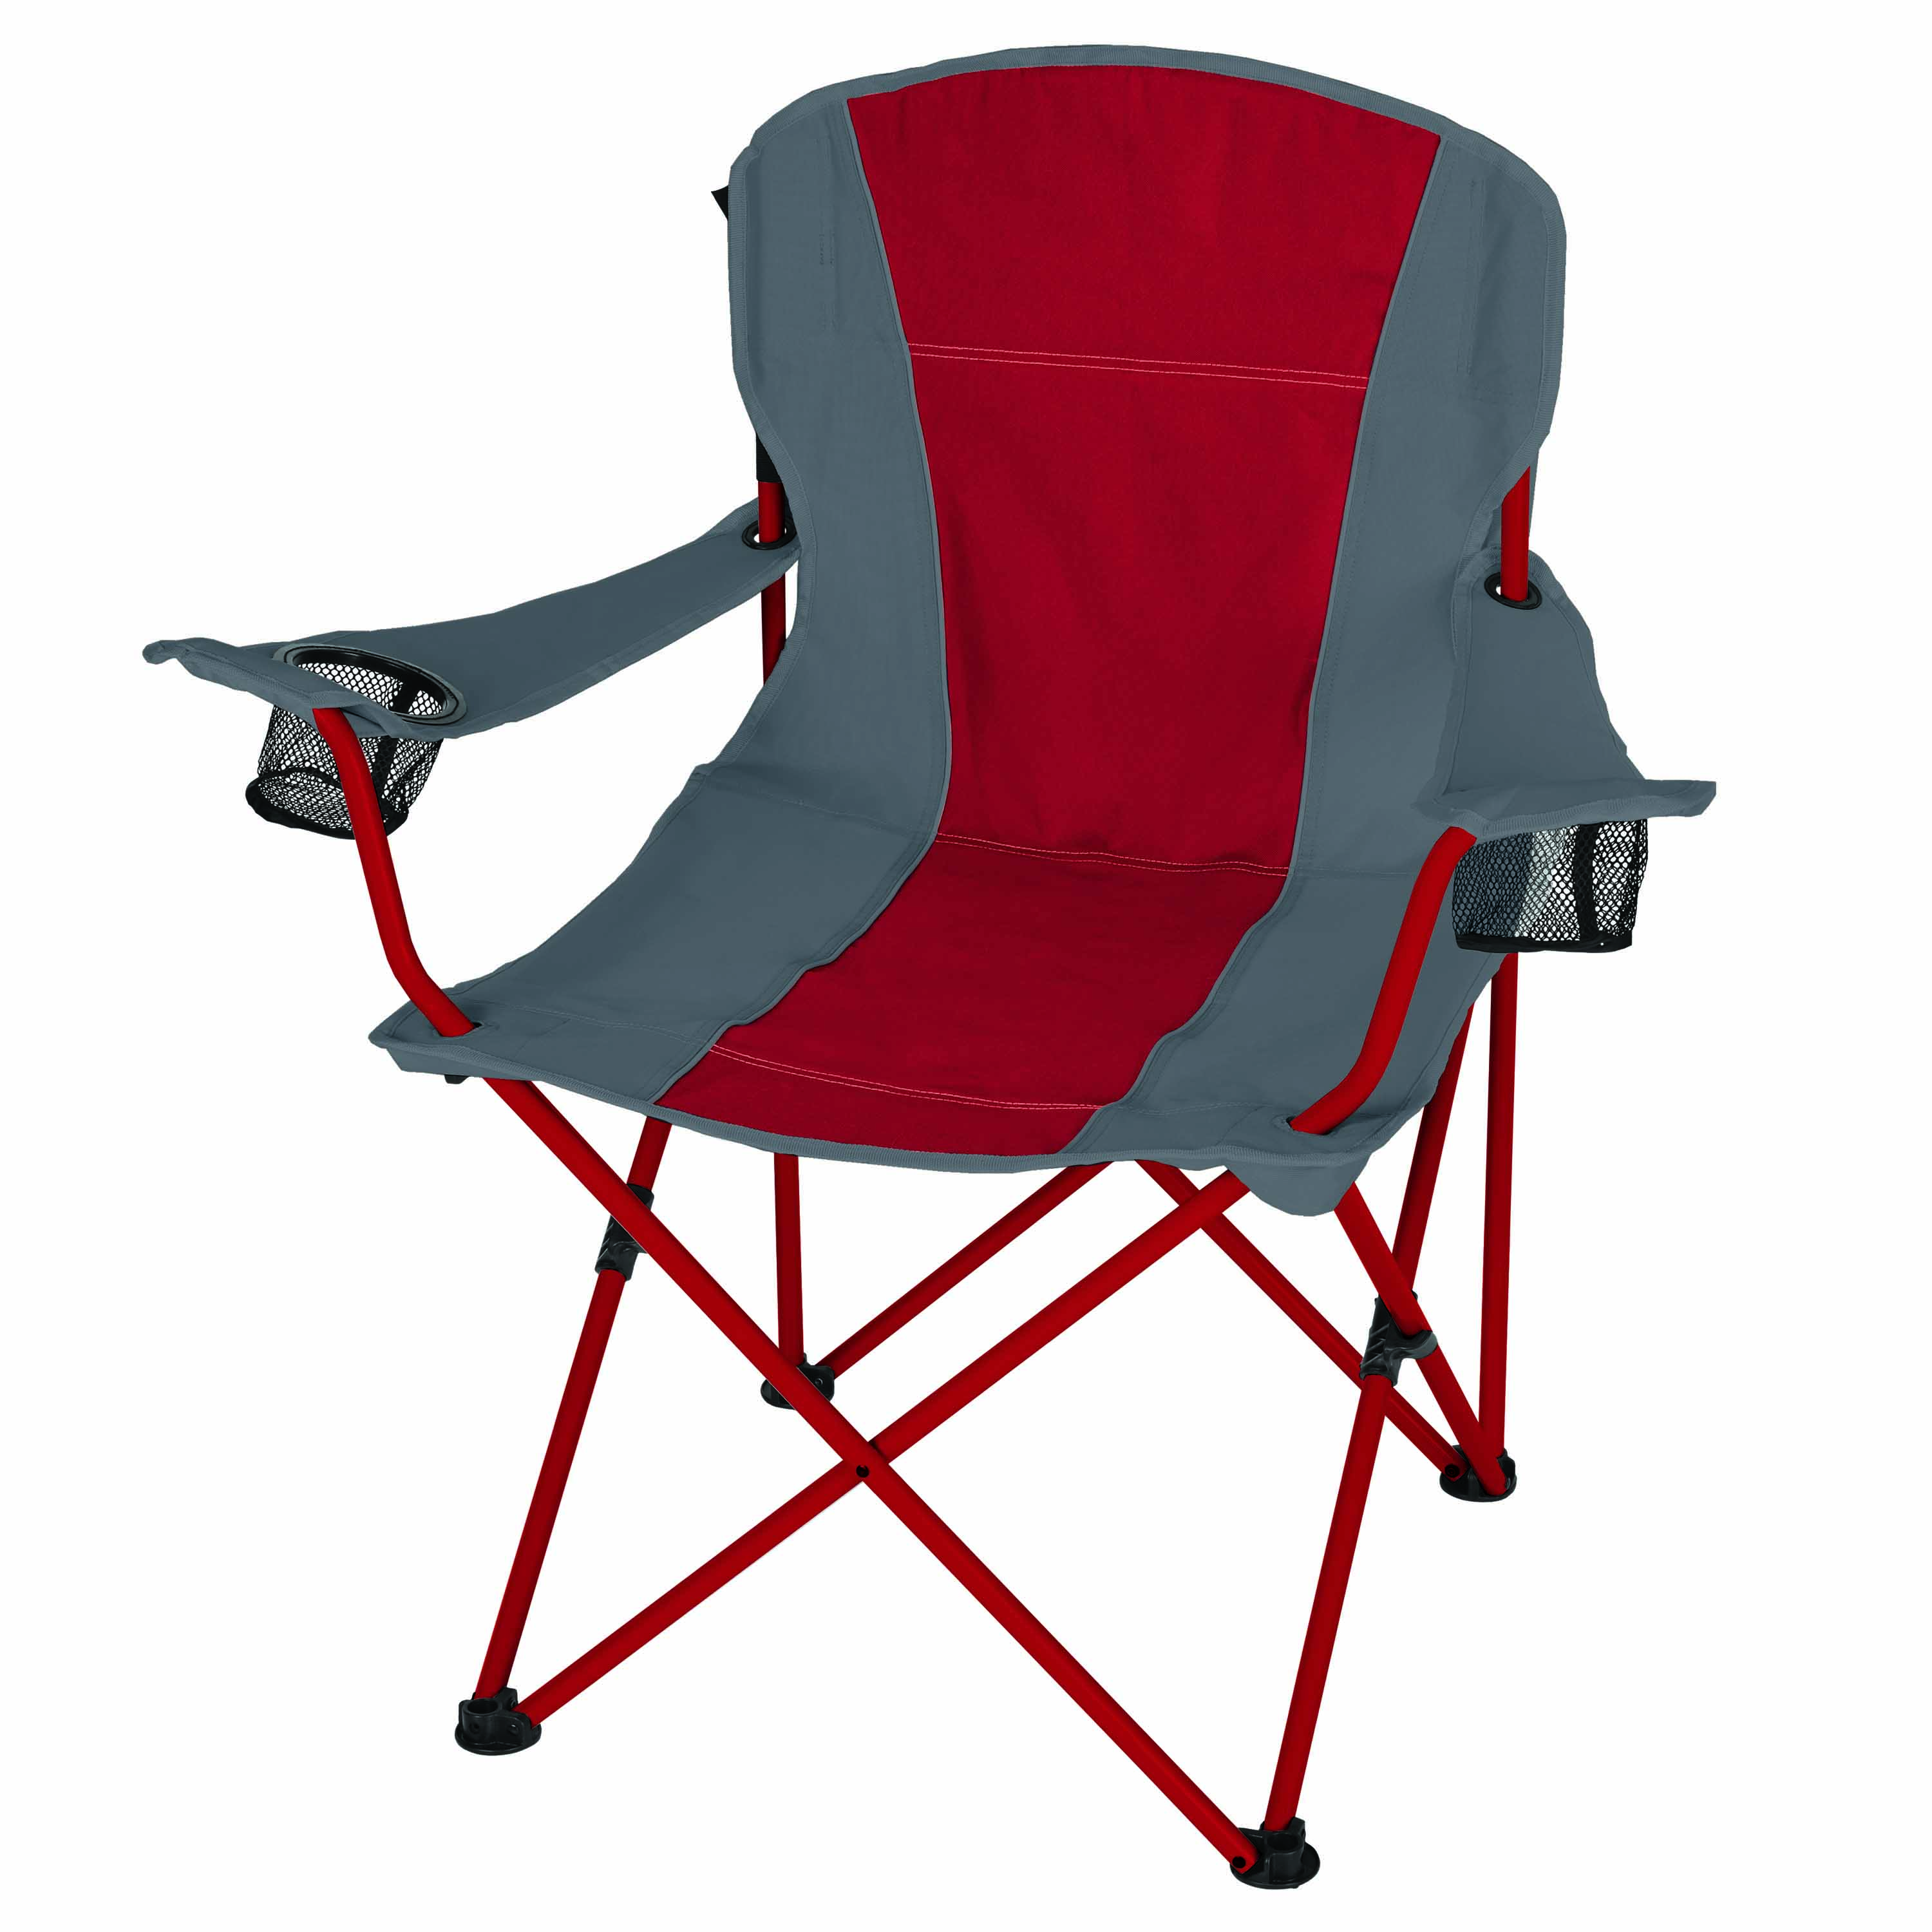 Surprising Details About Ozark Camping Lounge Chair Oversized Big Folding Portable Heavy Duty Outdoor New Unemploymentrelief Wooden Chair Designs For Living Room Unemploymentrelieforg